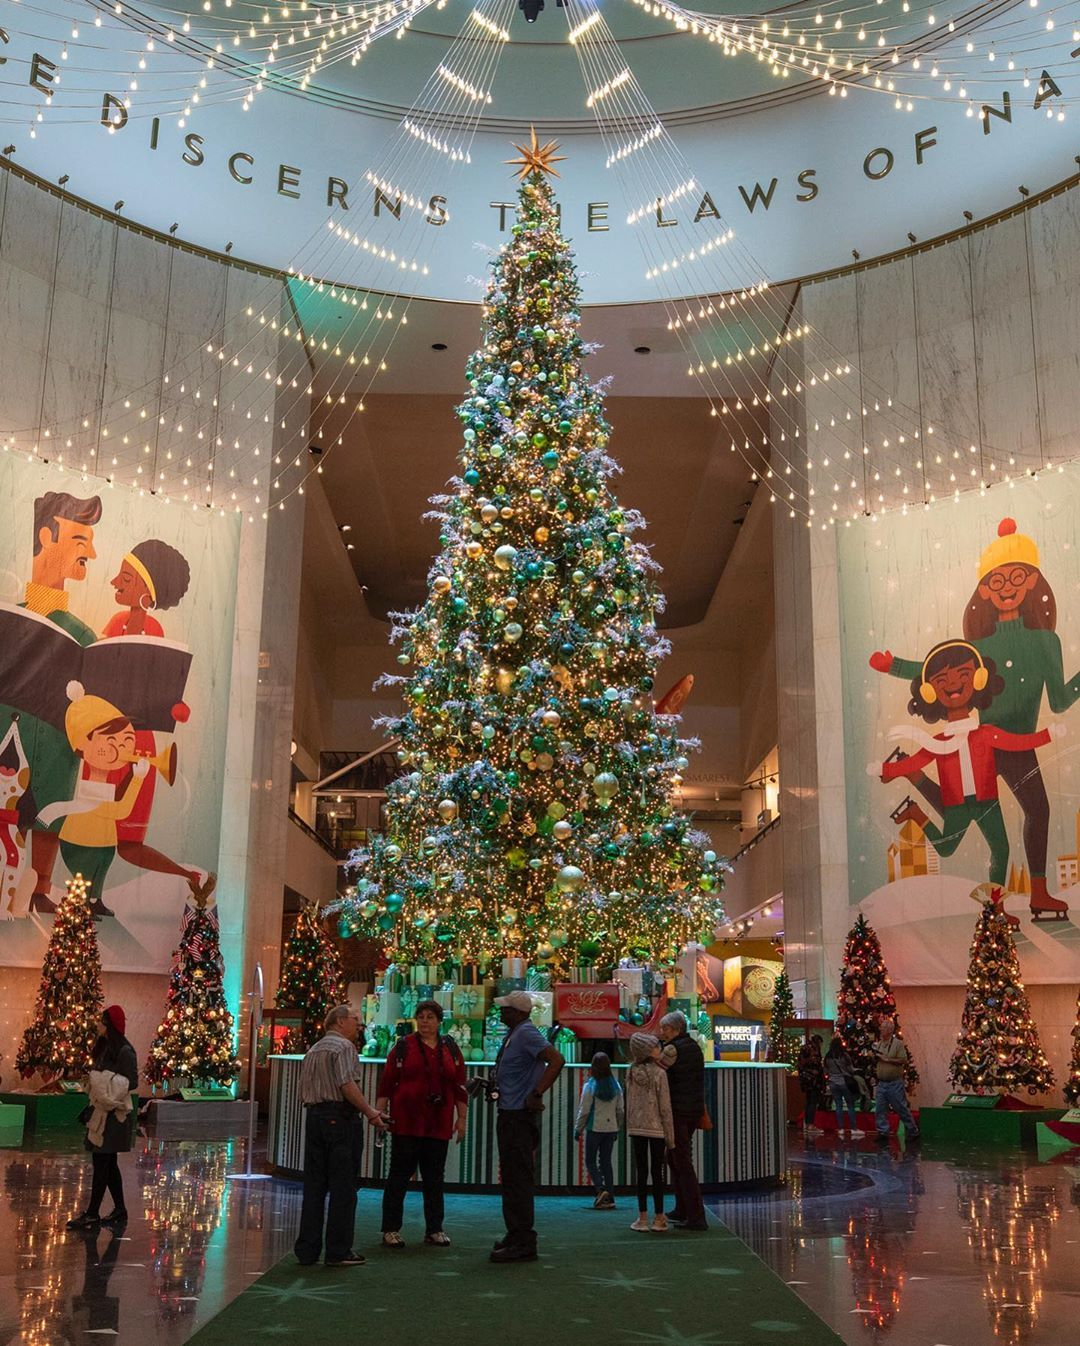 """Chicago Bucket List on Instagram: """"The Iconic Christmas Around The World and Holidays of Light is BACK at @MSIchicago - Who wants to go?! 🎄🧬Highlighting holiday trees and…"""""""